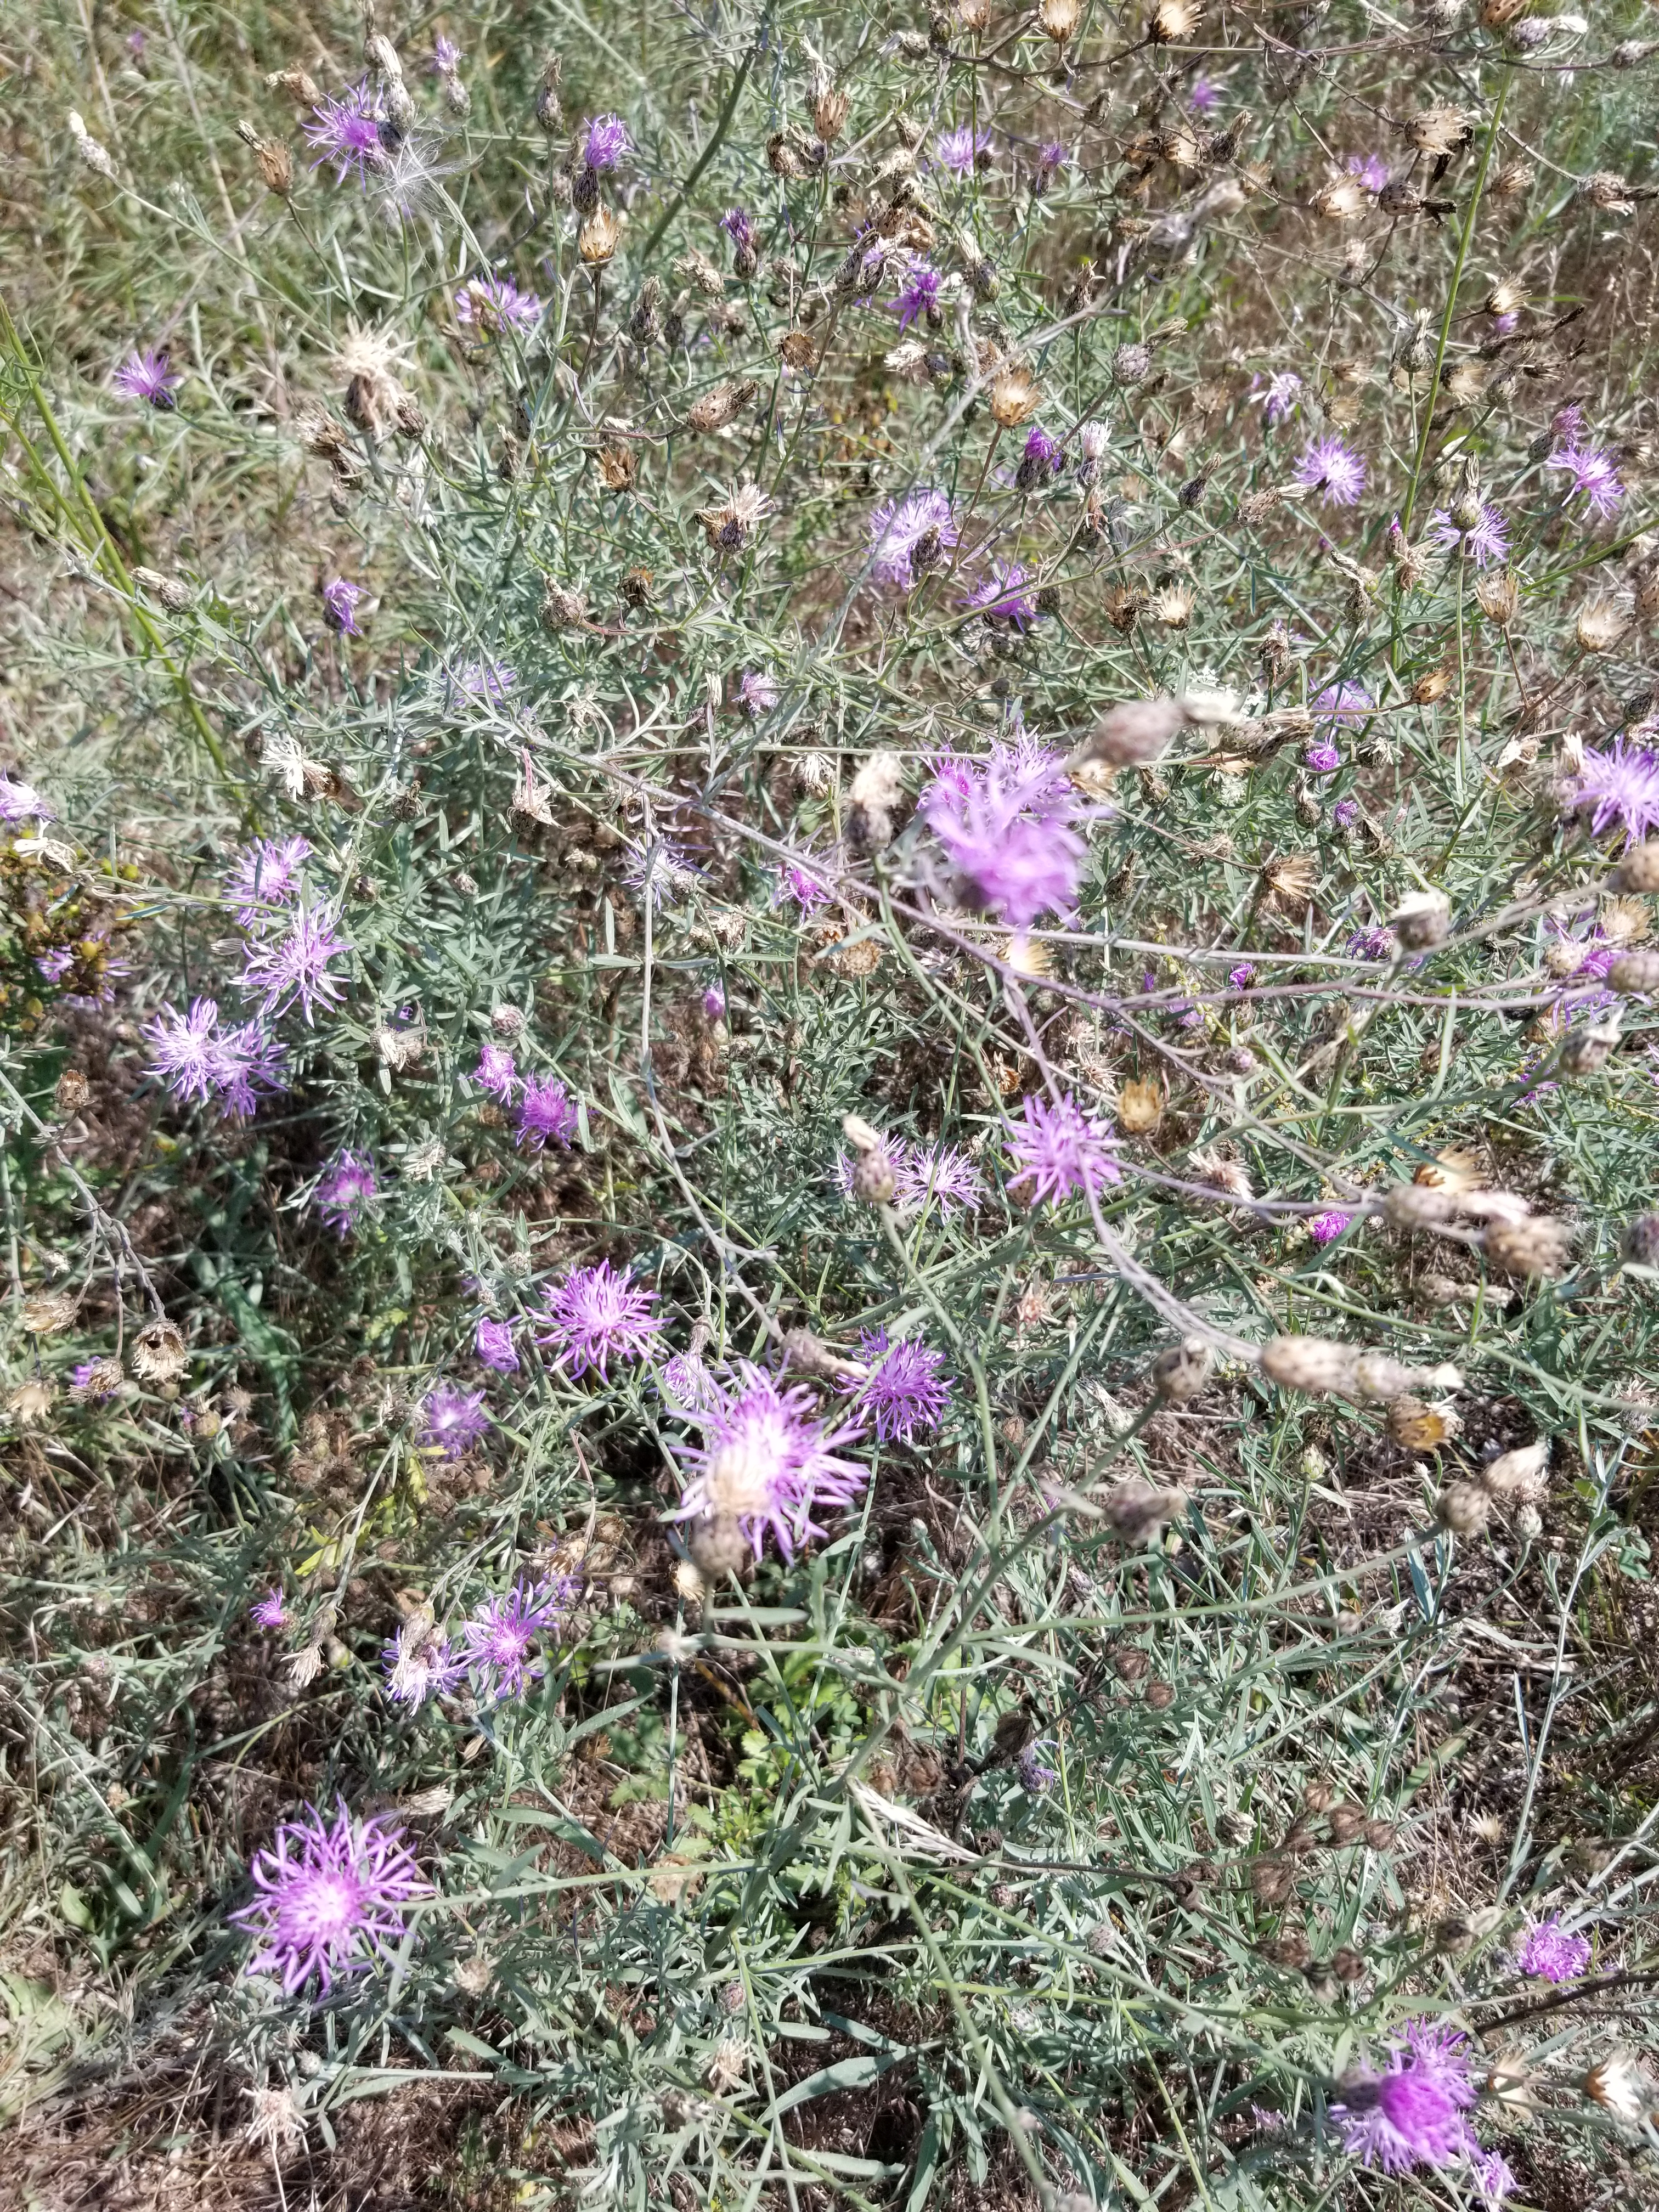 Spotted knapweed flower and stem